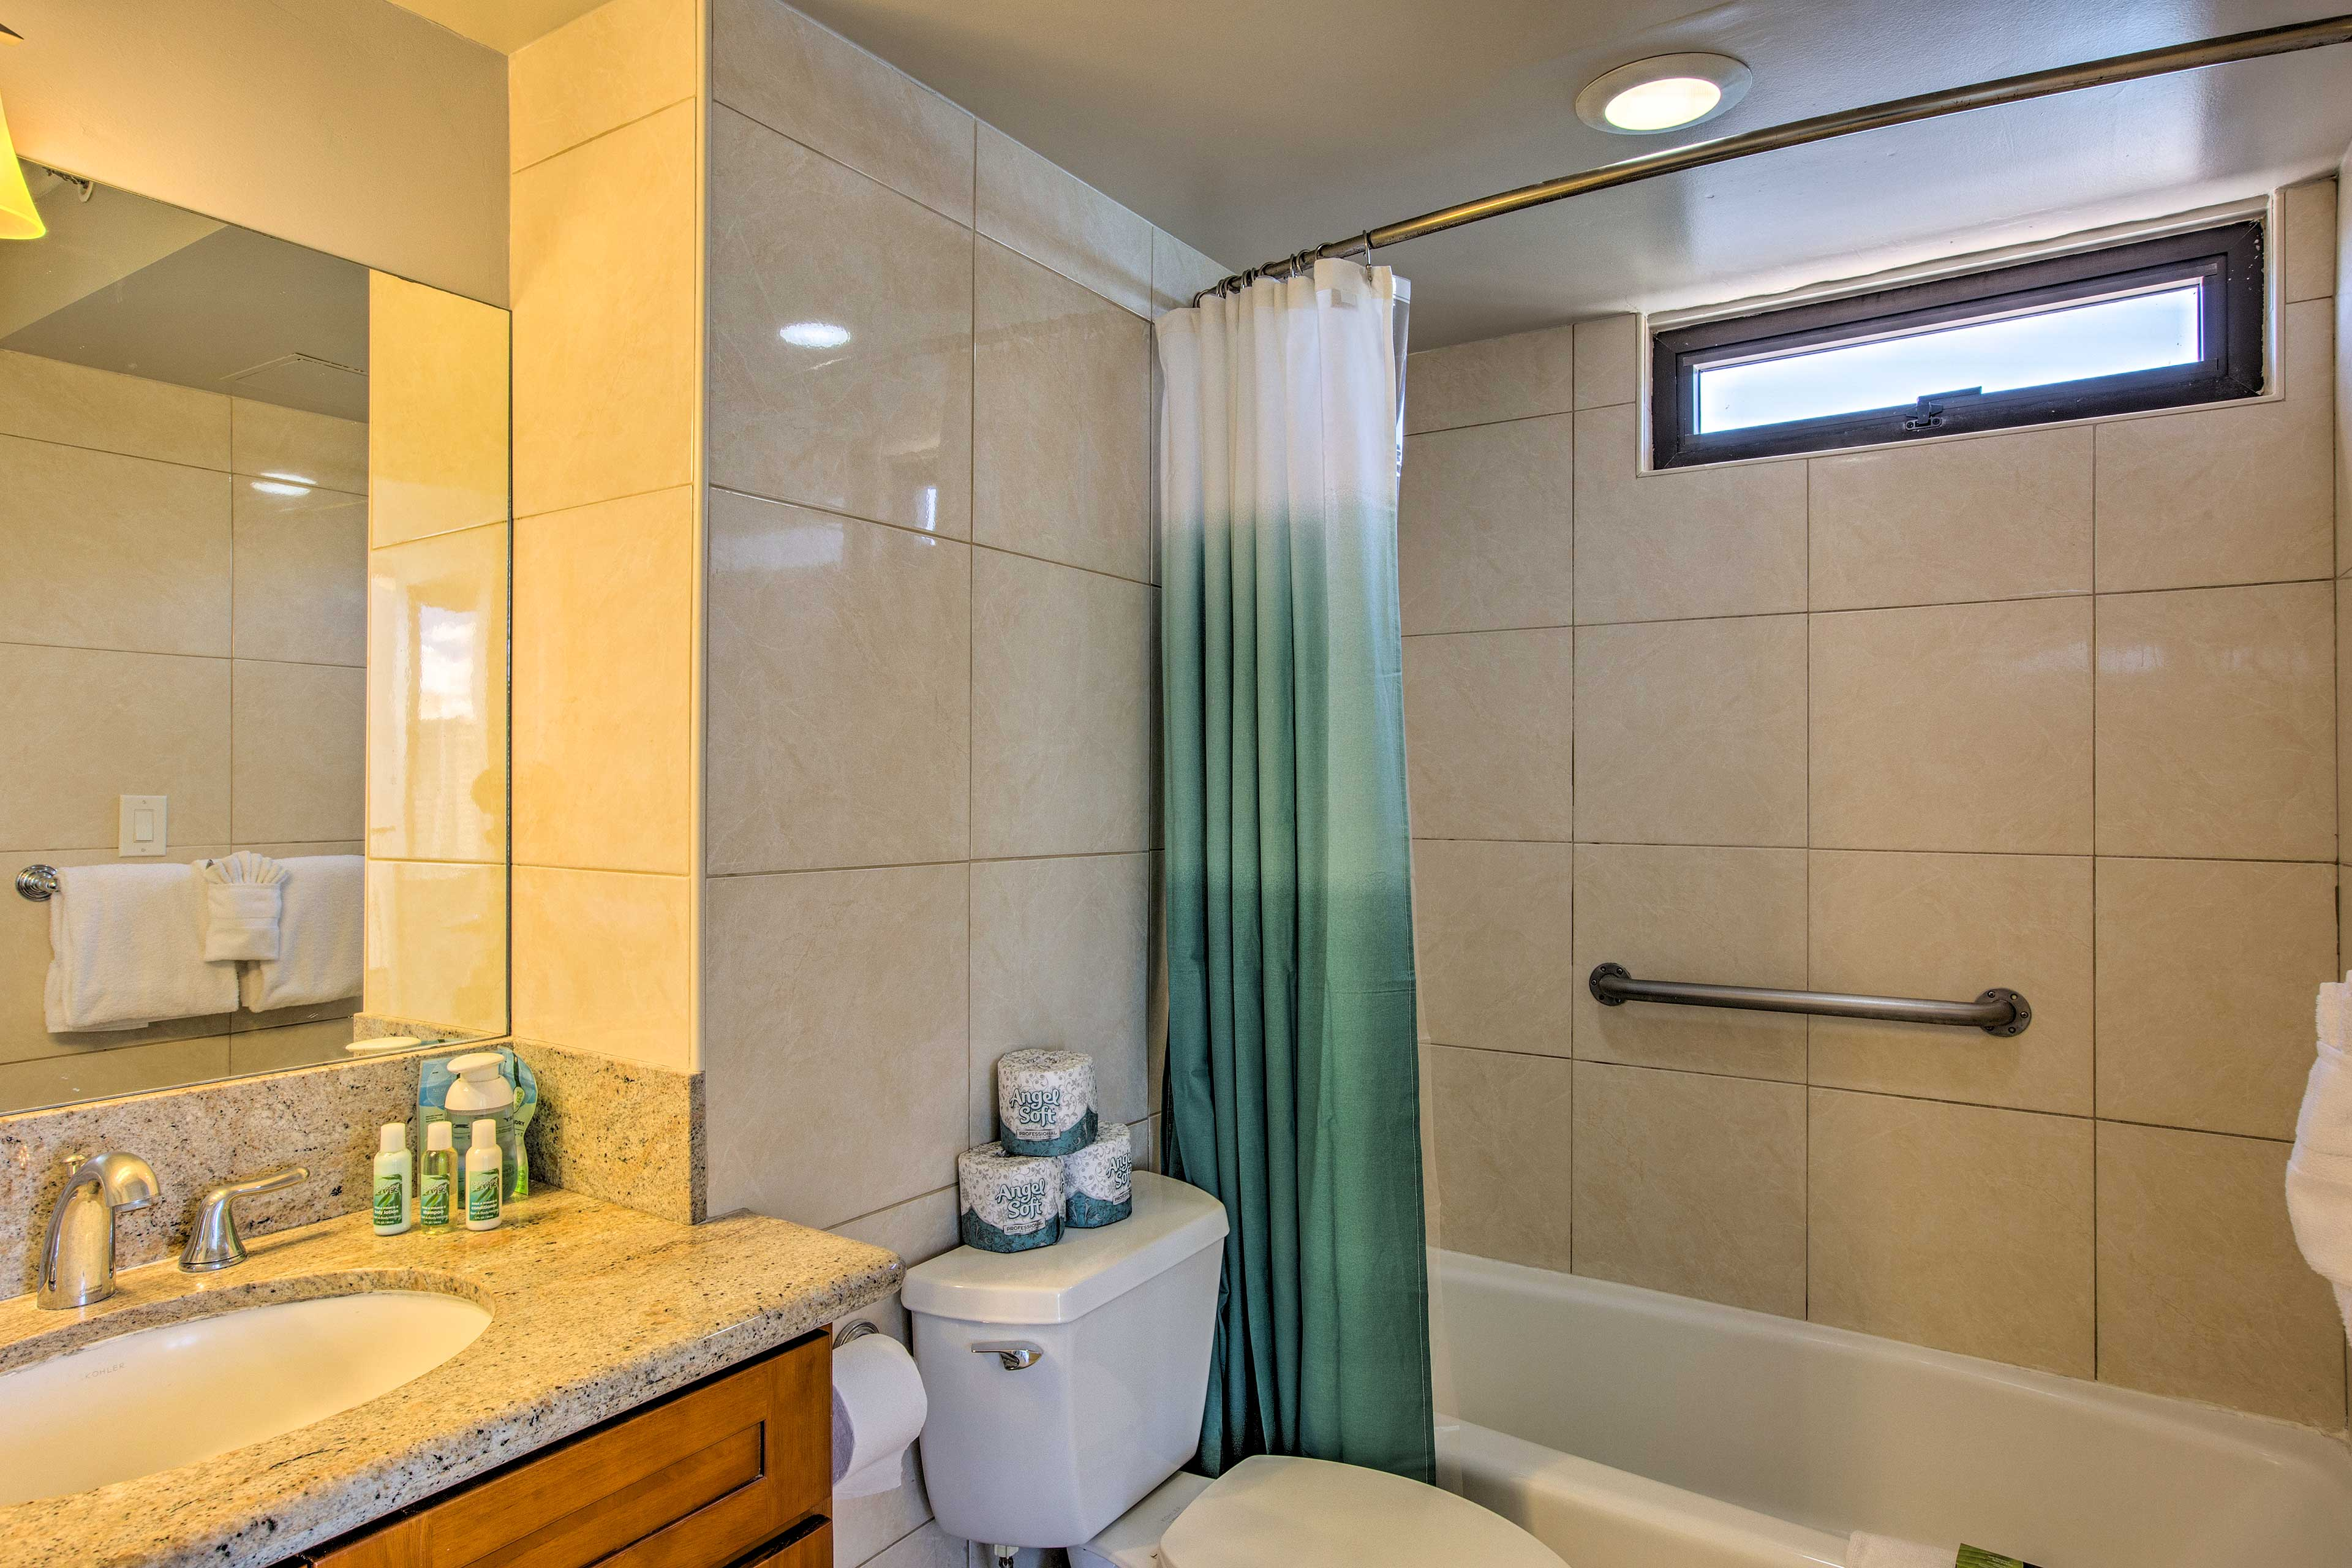 A tub/shower combo completes the full bathroom.